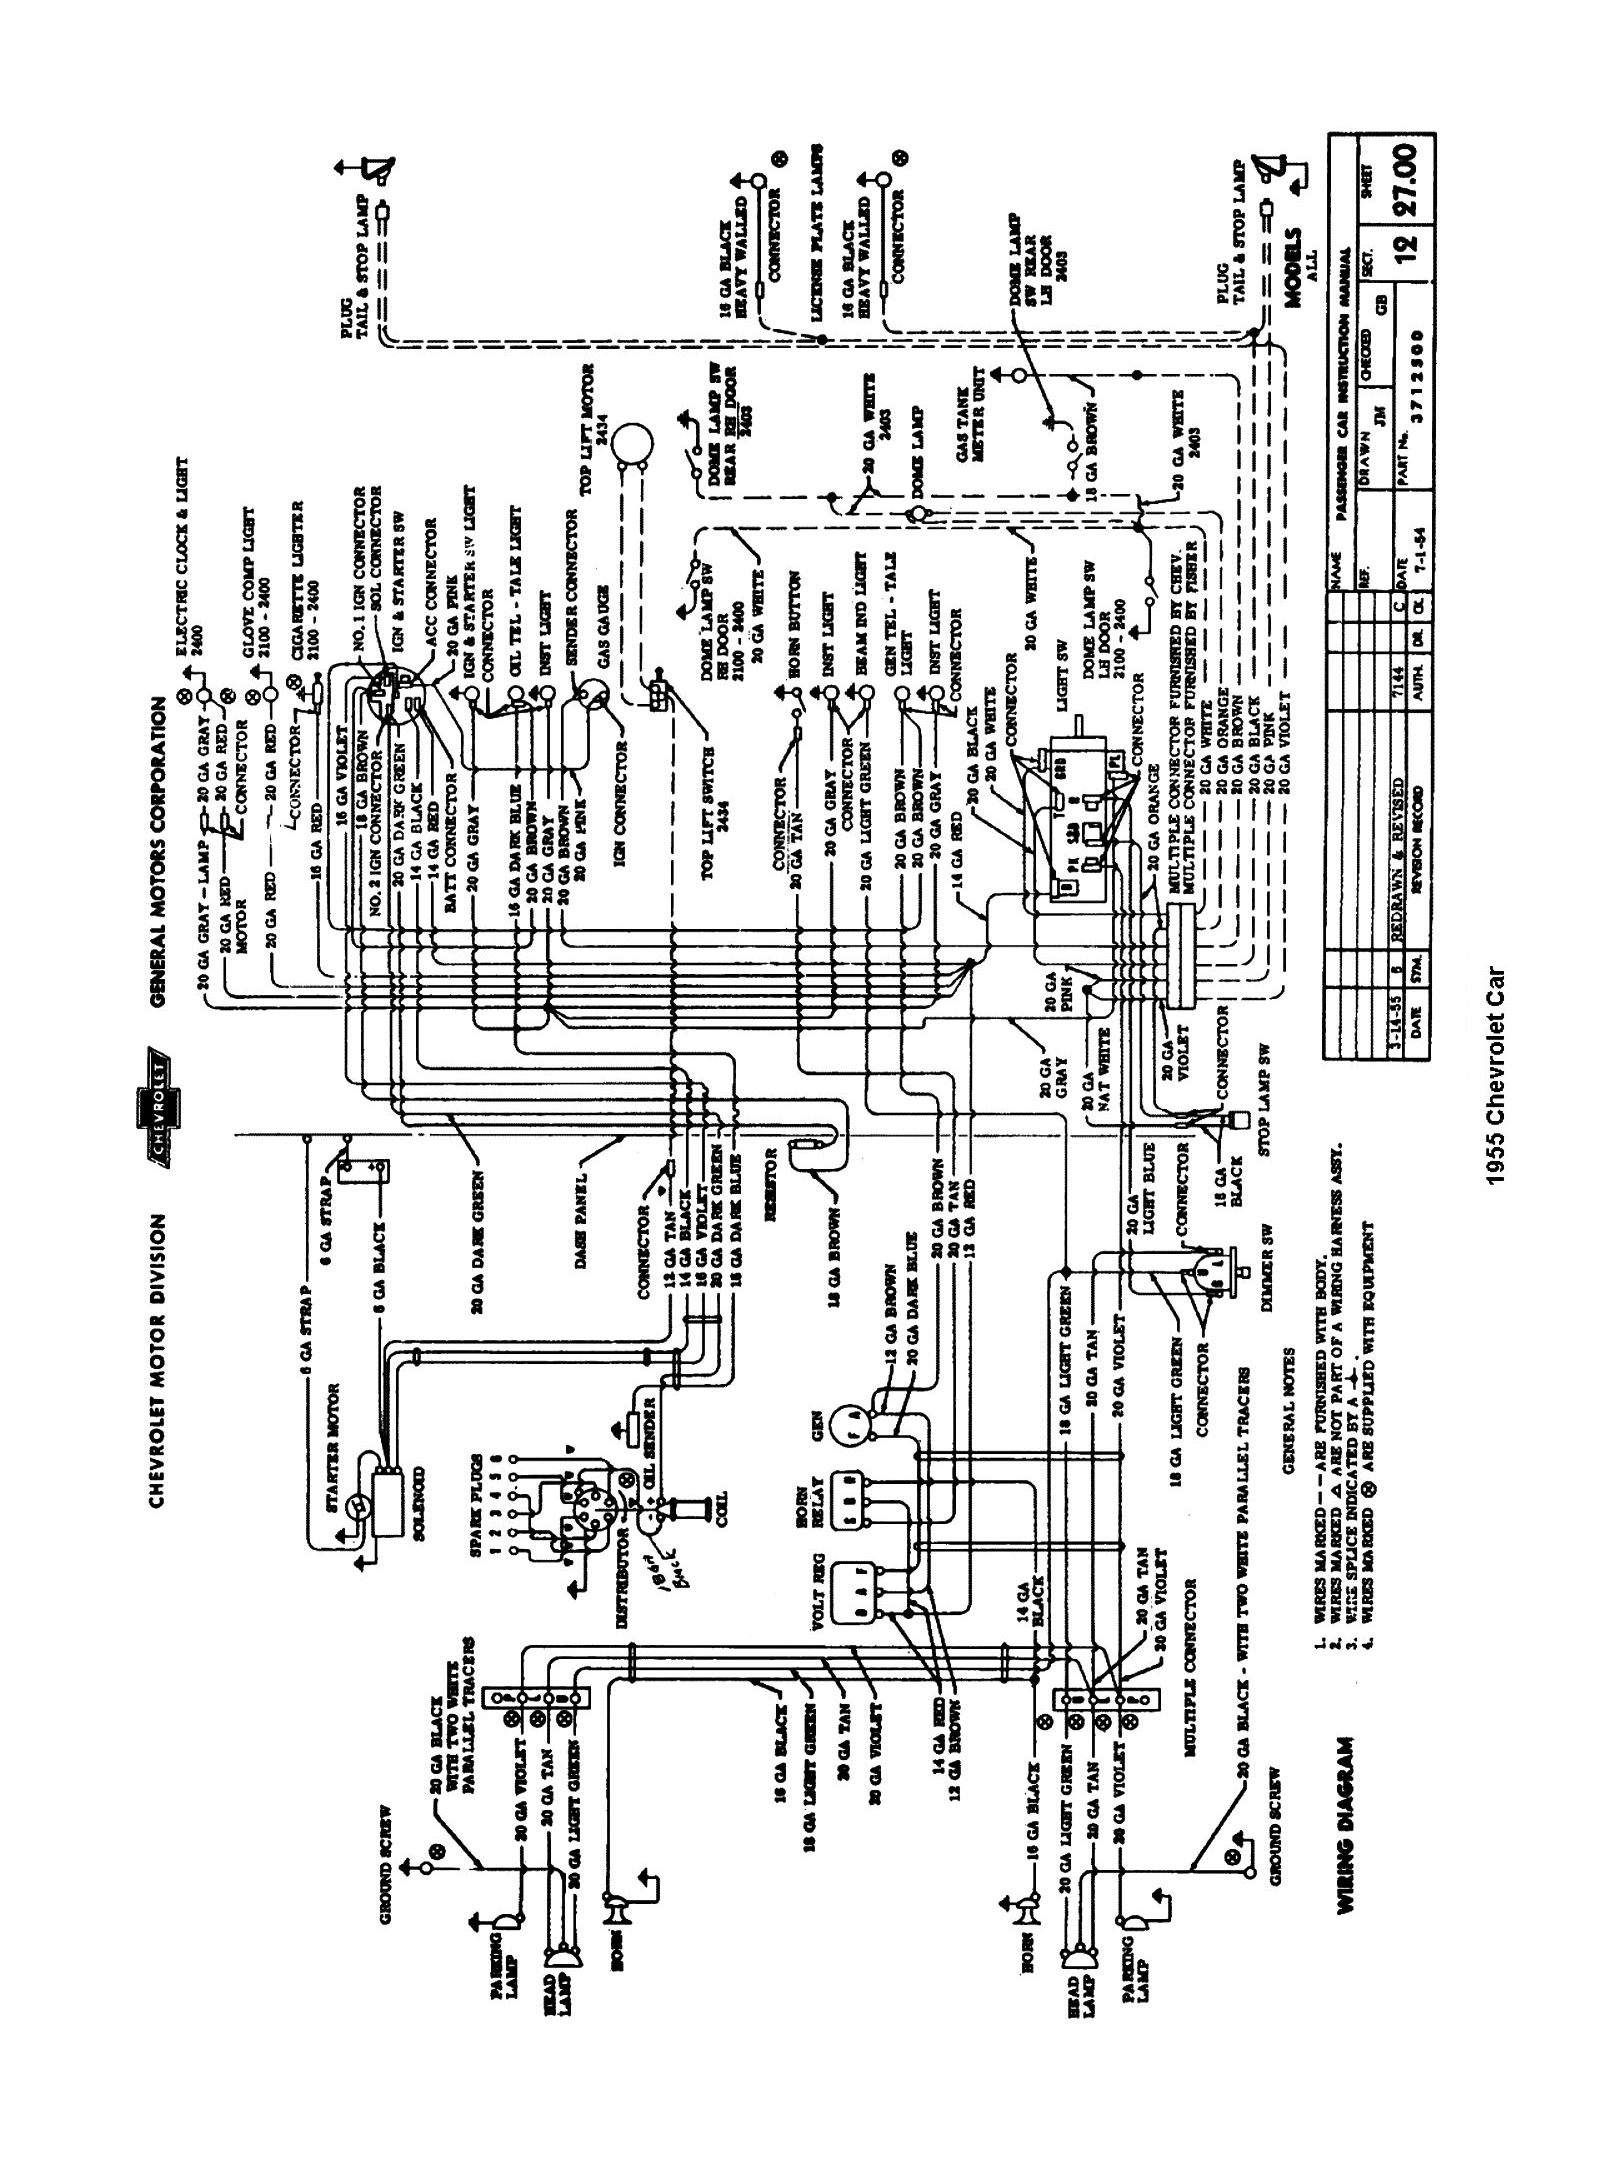 57 Chevy Painless Wiring Diagram